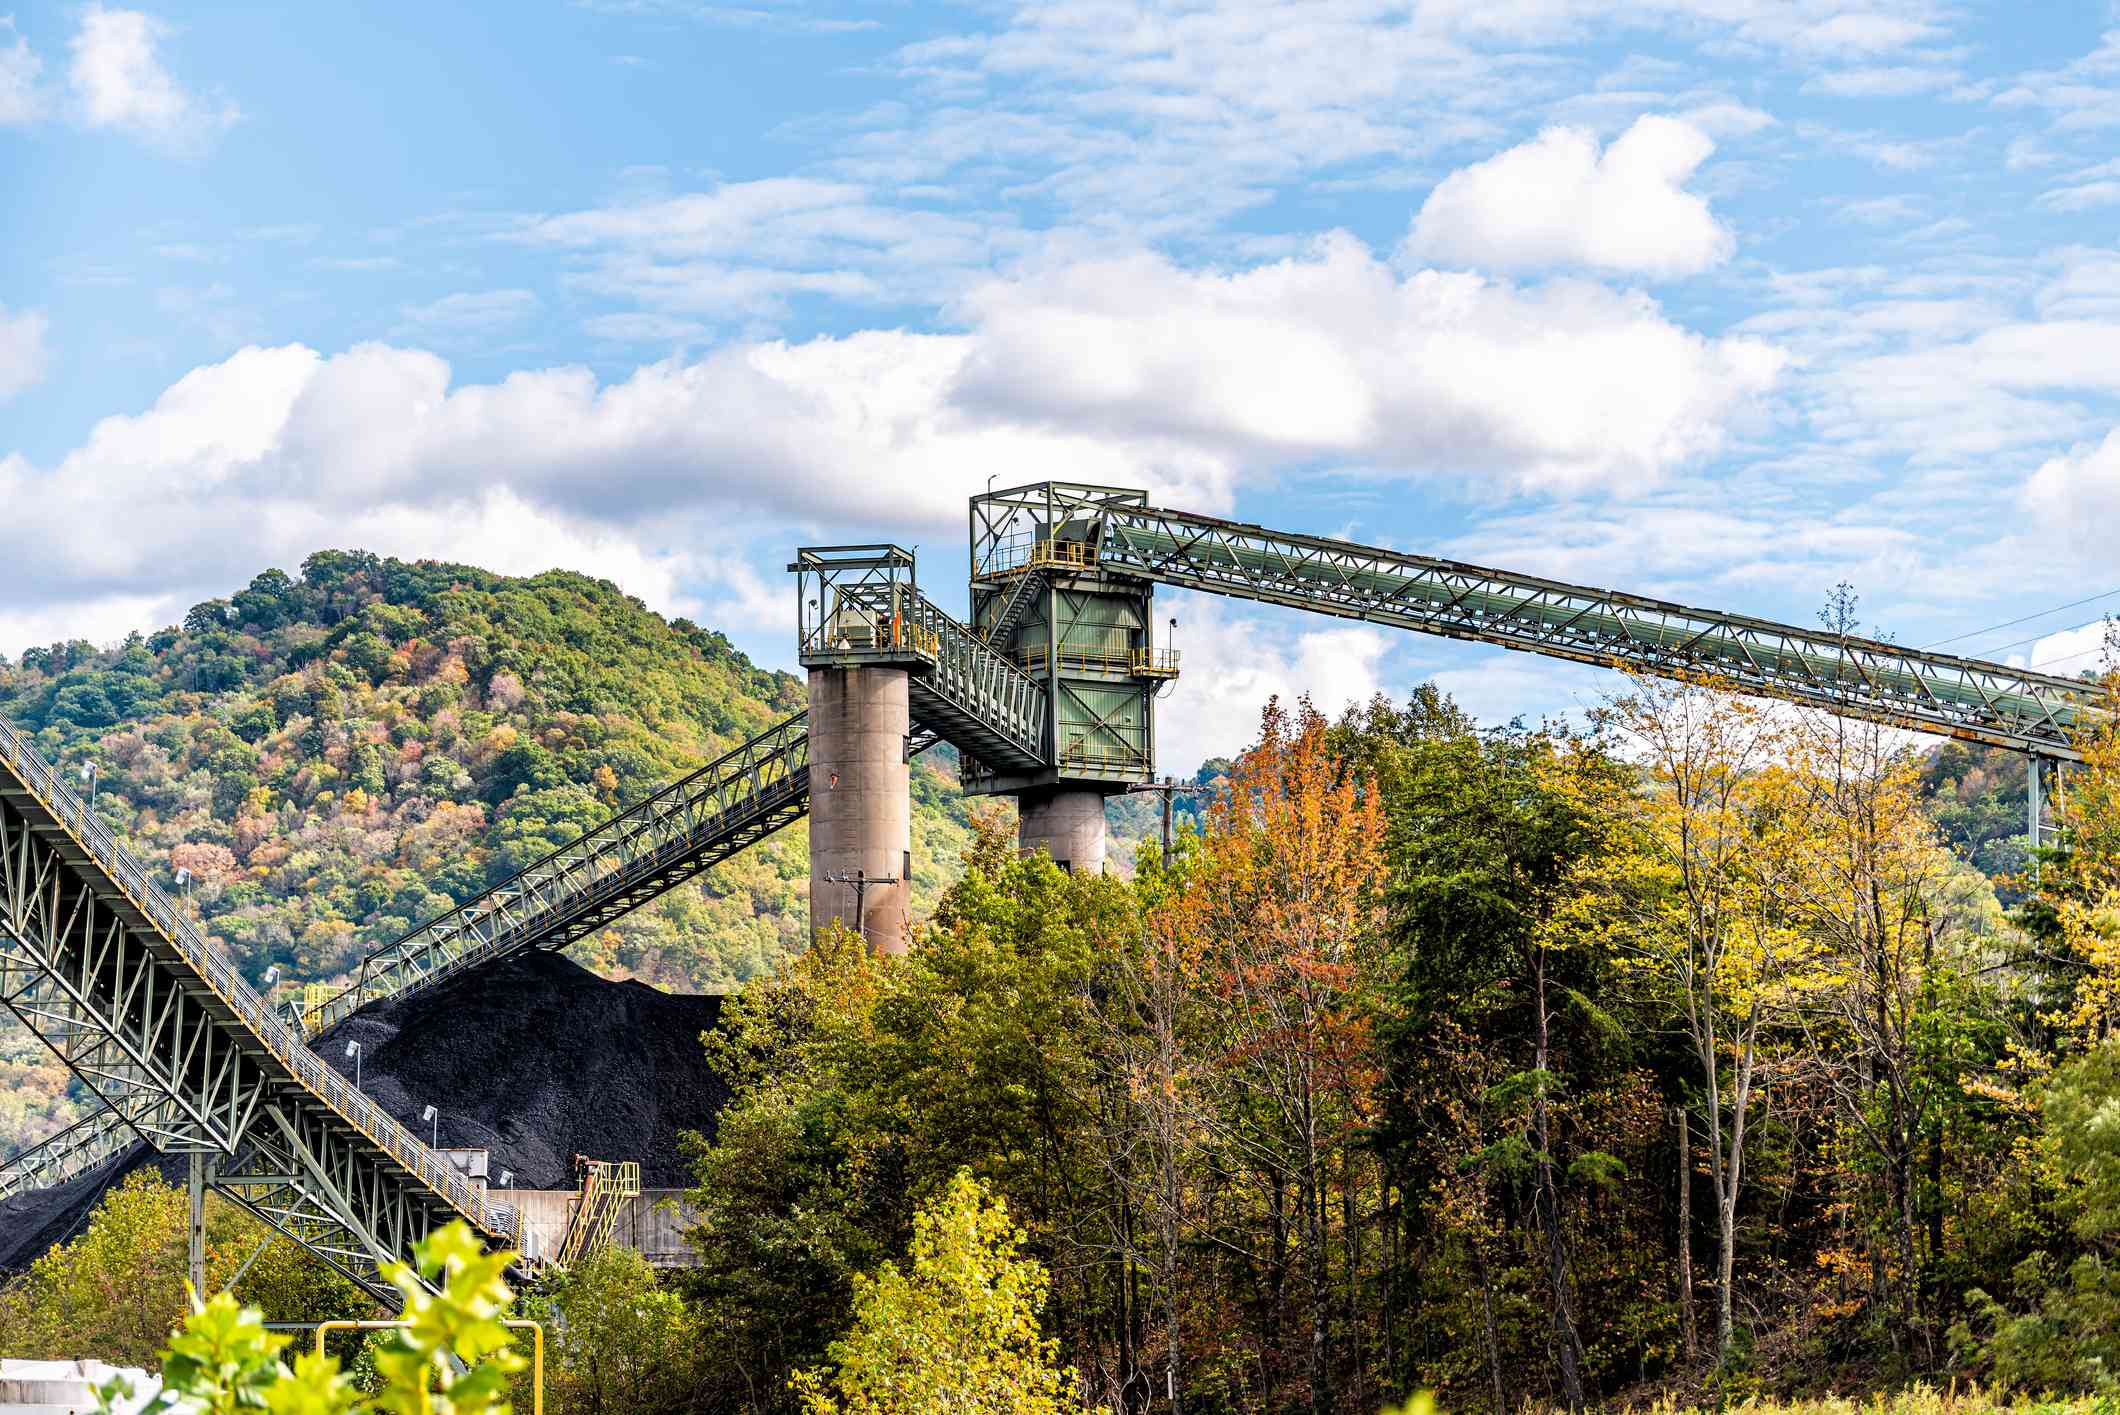 Charleston, West Virginia, USA city with industrial factory coal conveyor belt power plant exterior architecture with elevator lift